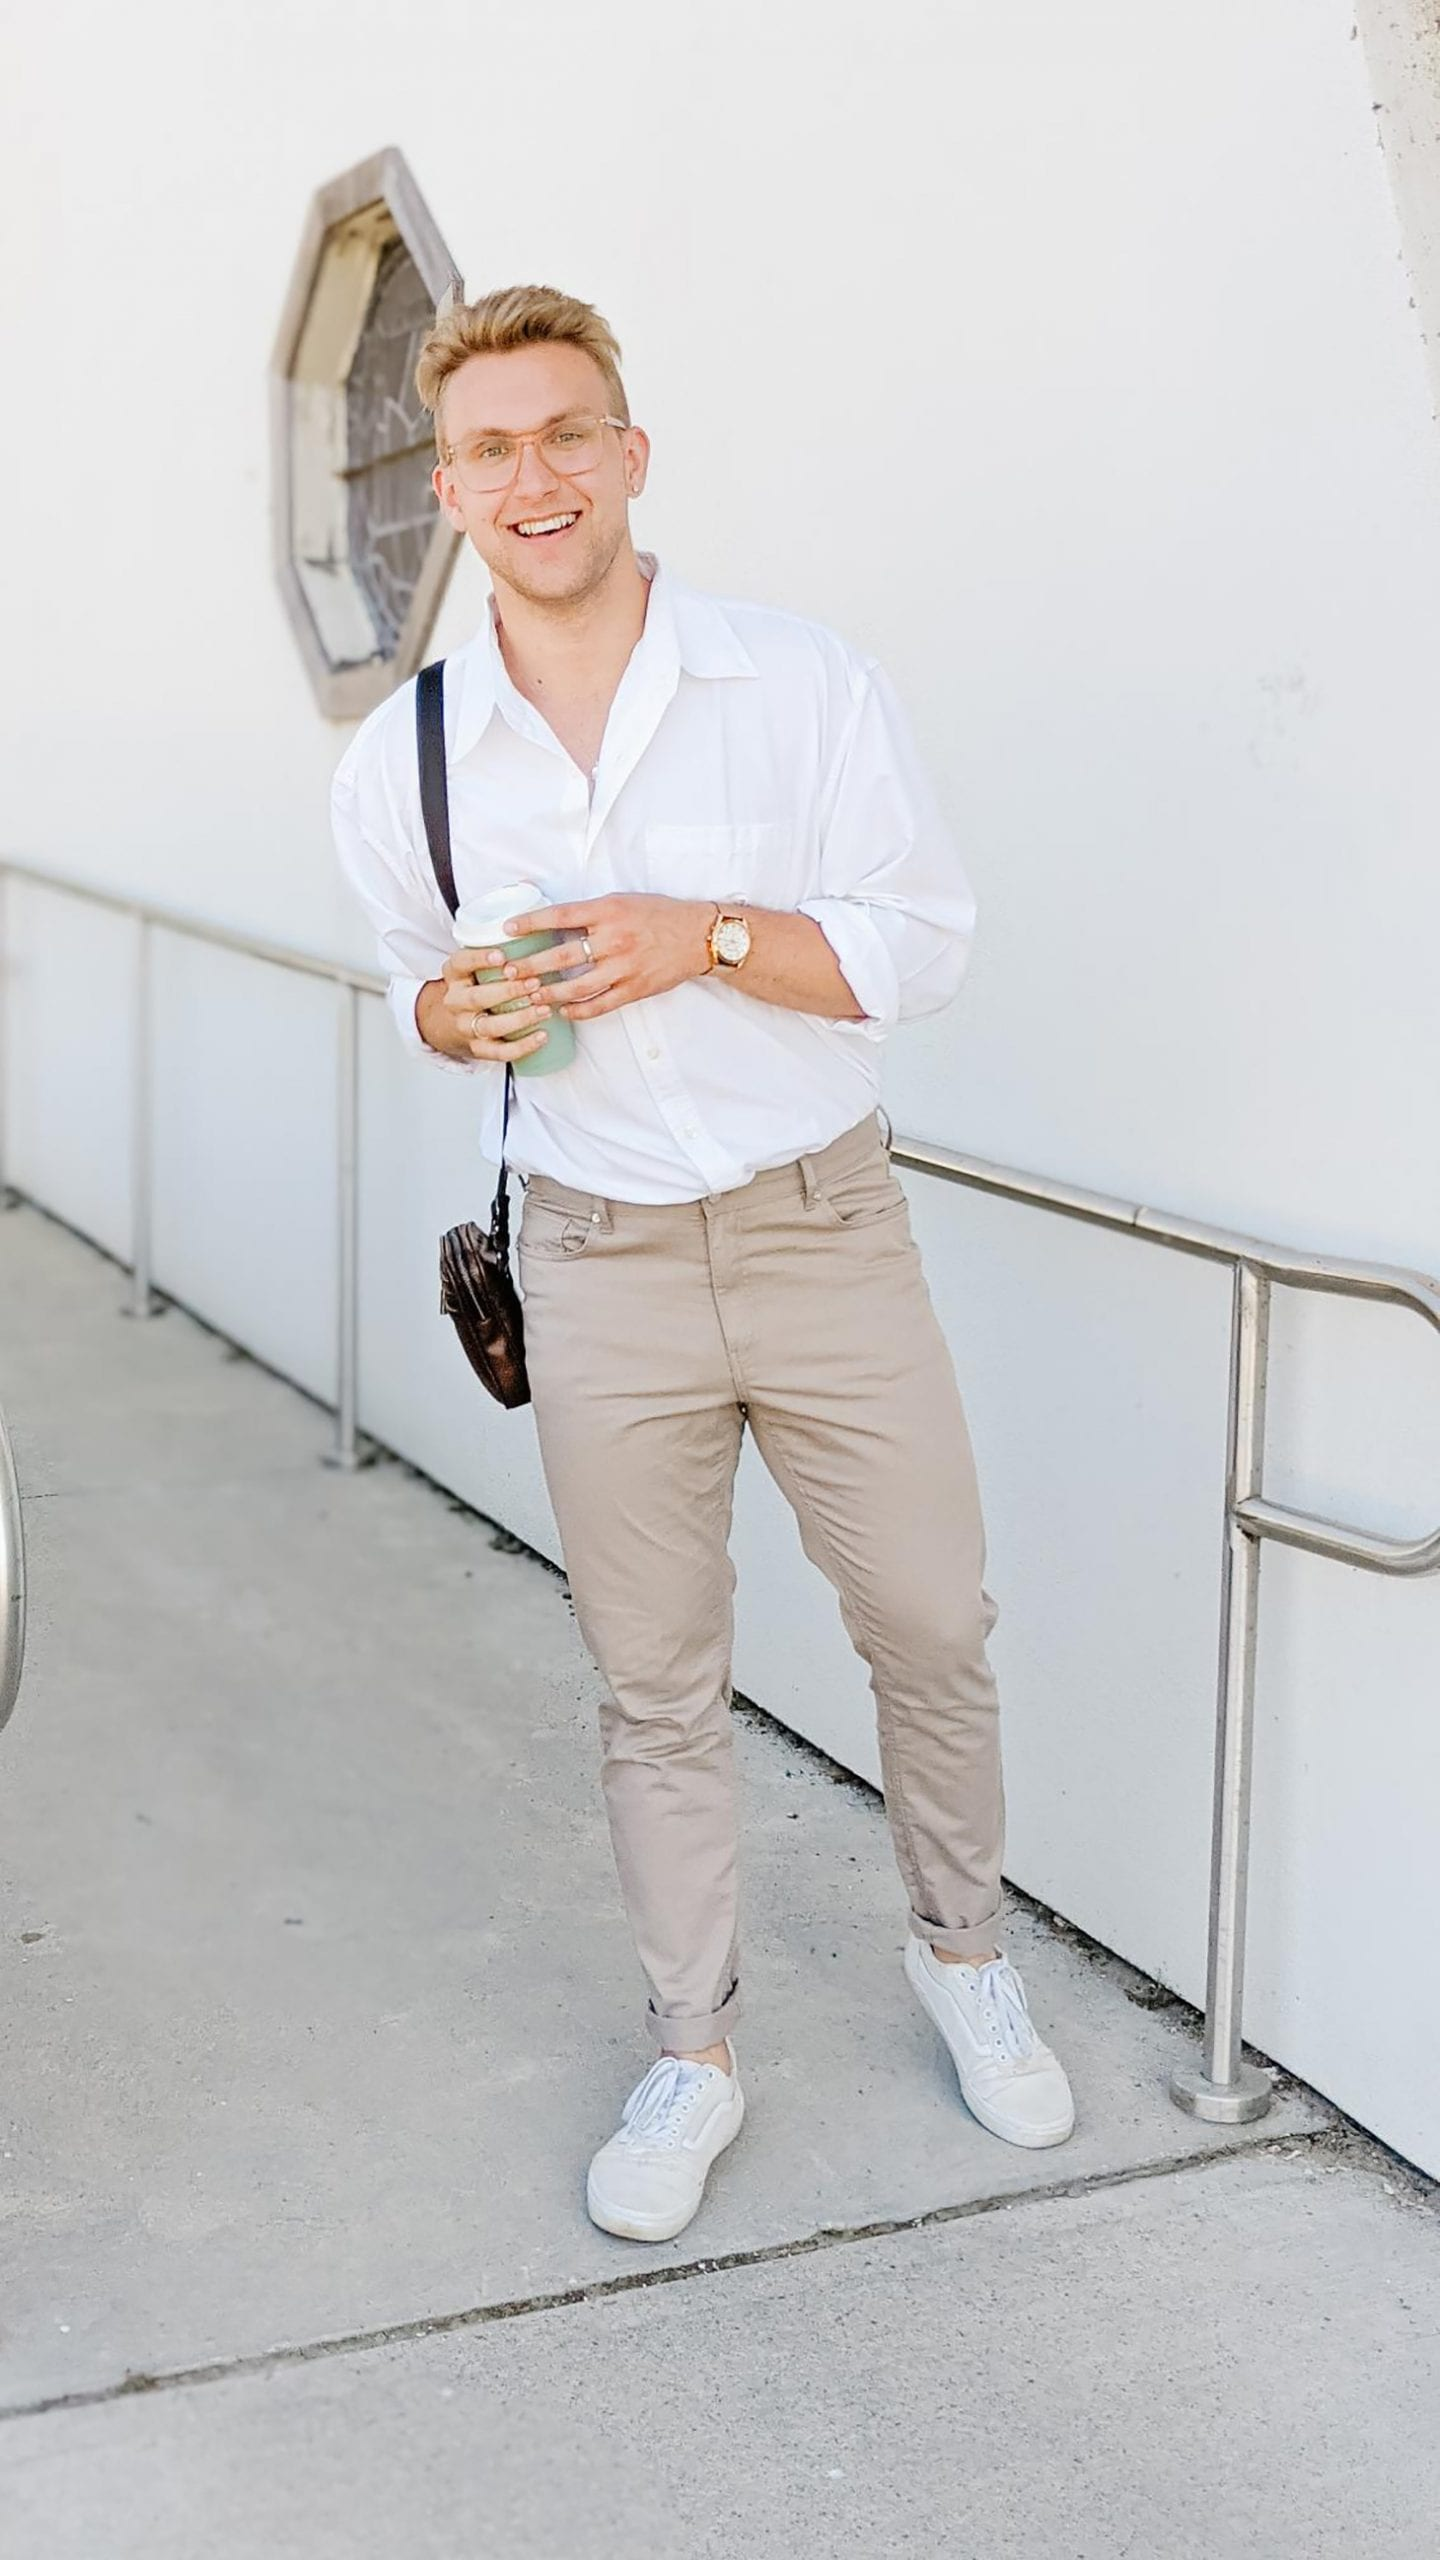 Blonde man, Christoper Allen, standing outside of a white building wearing a casual white button down shirt and tapered khaki pants.